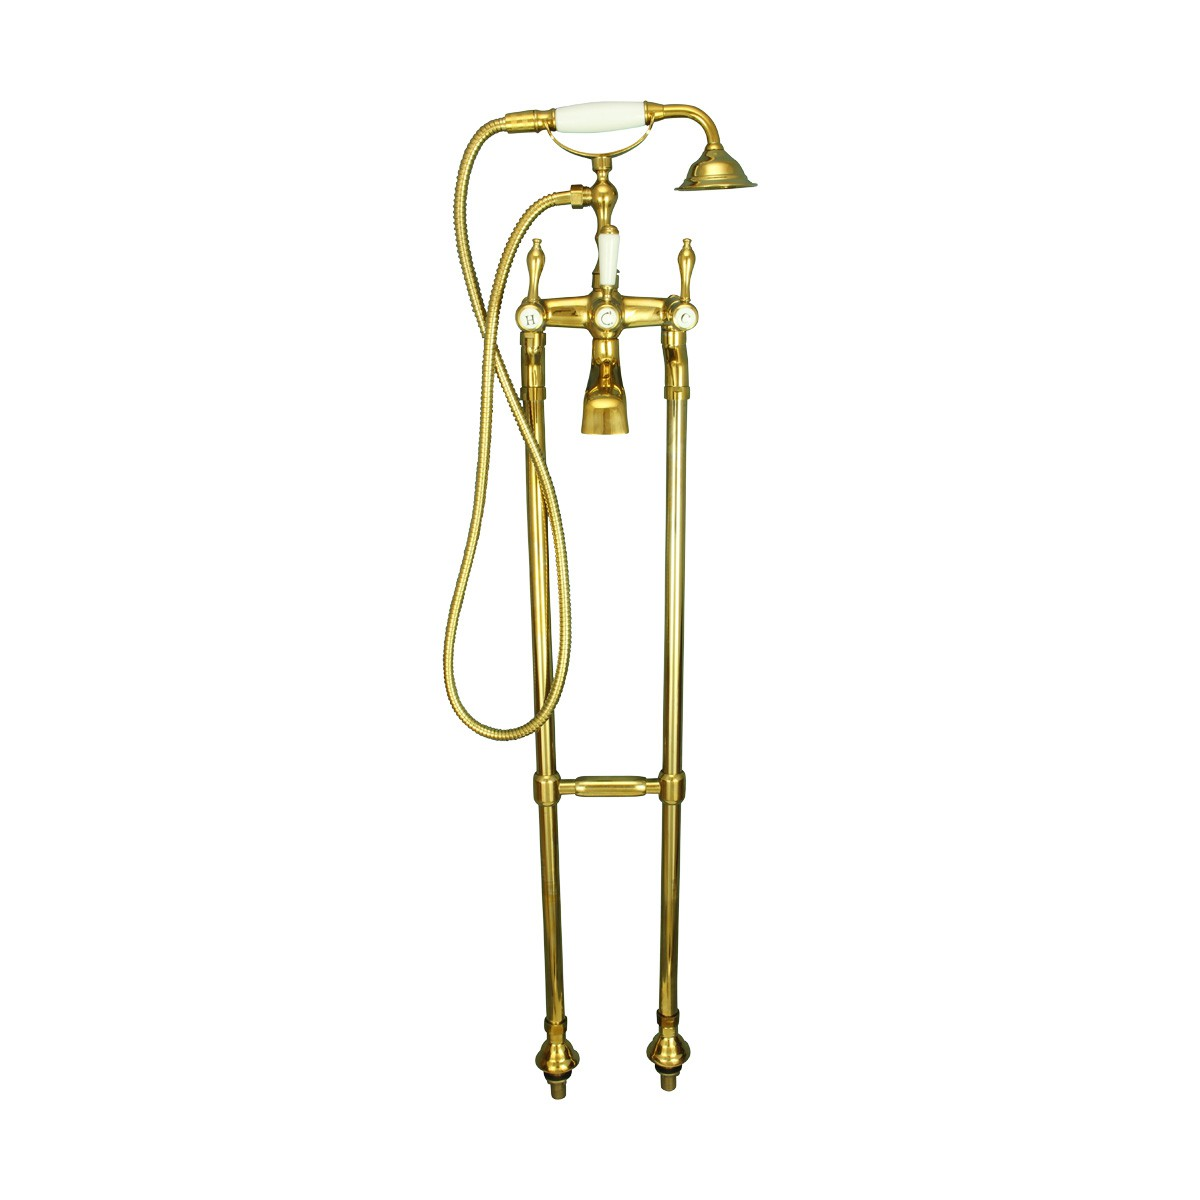 Freestanding Tub Faucet Teardrop Telephone Shower Gold PVD